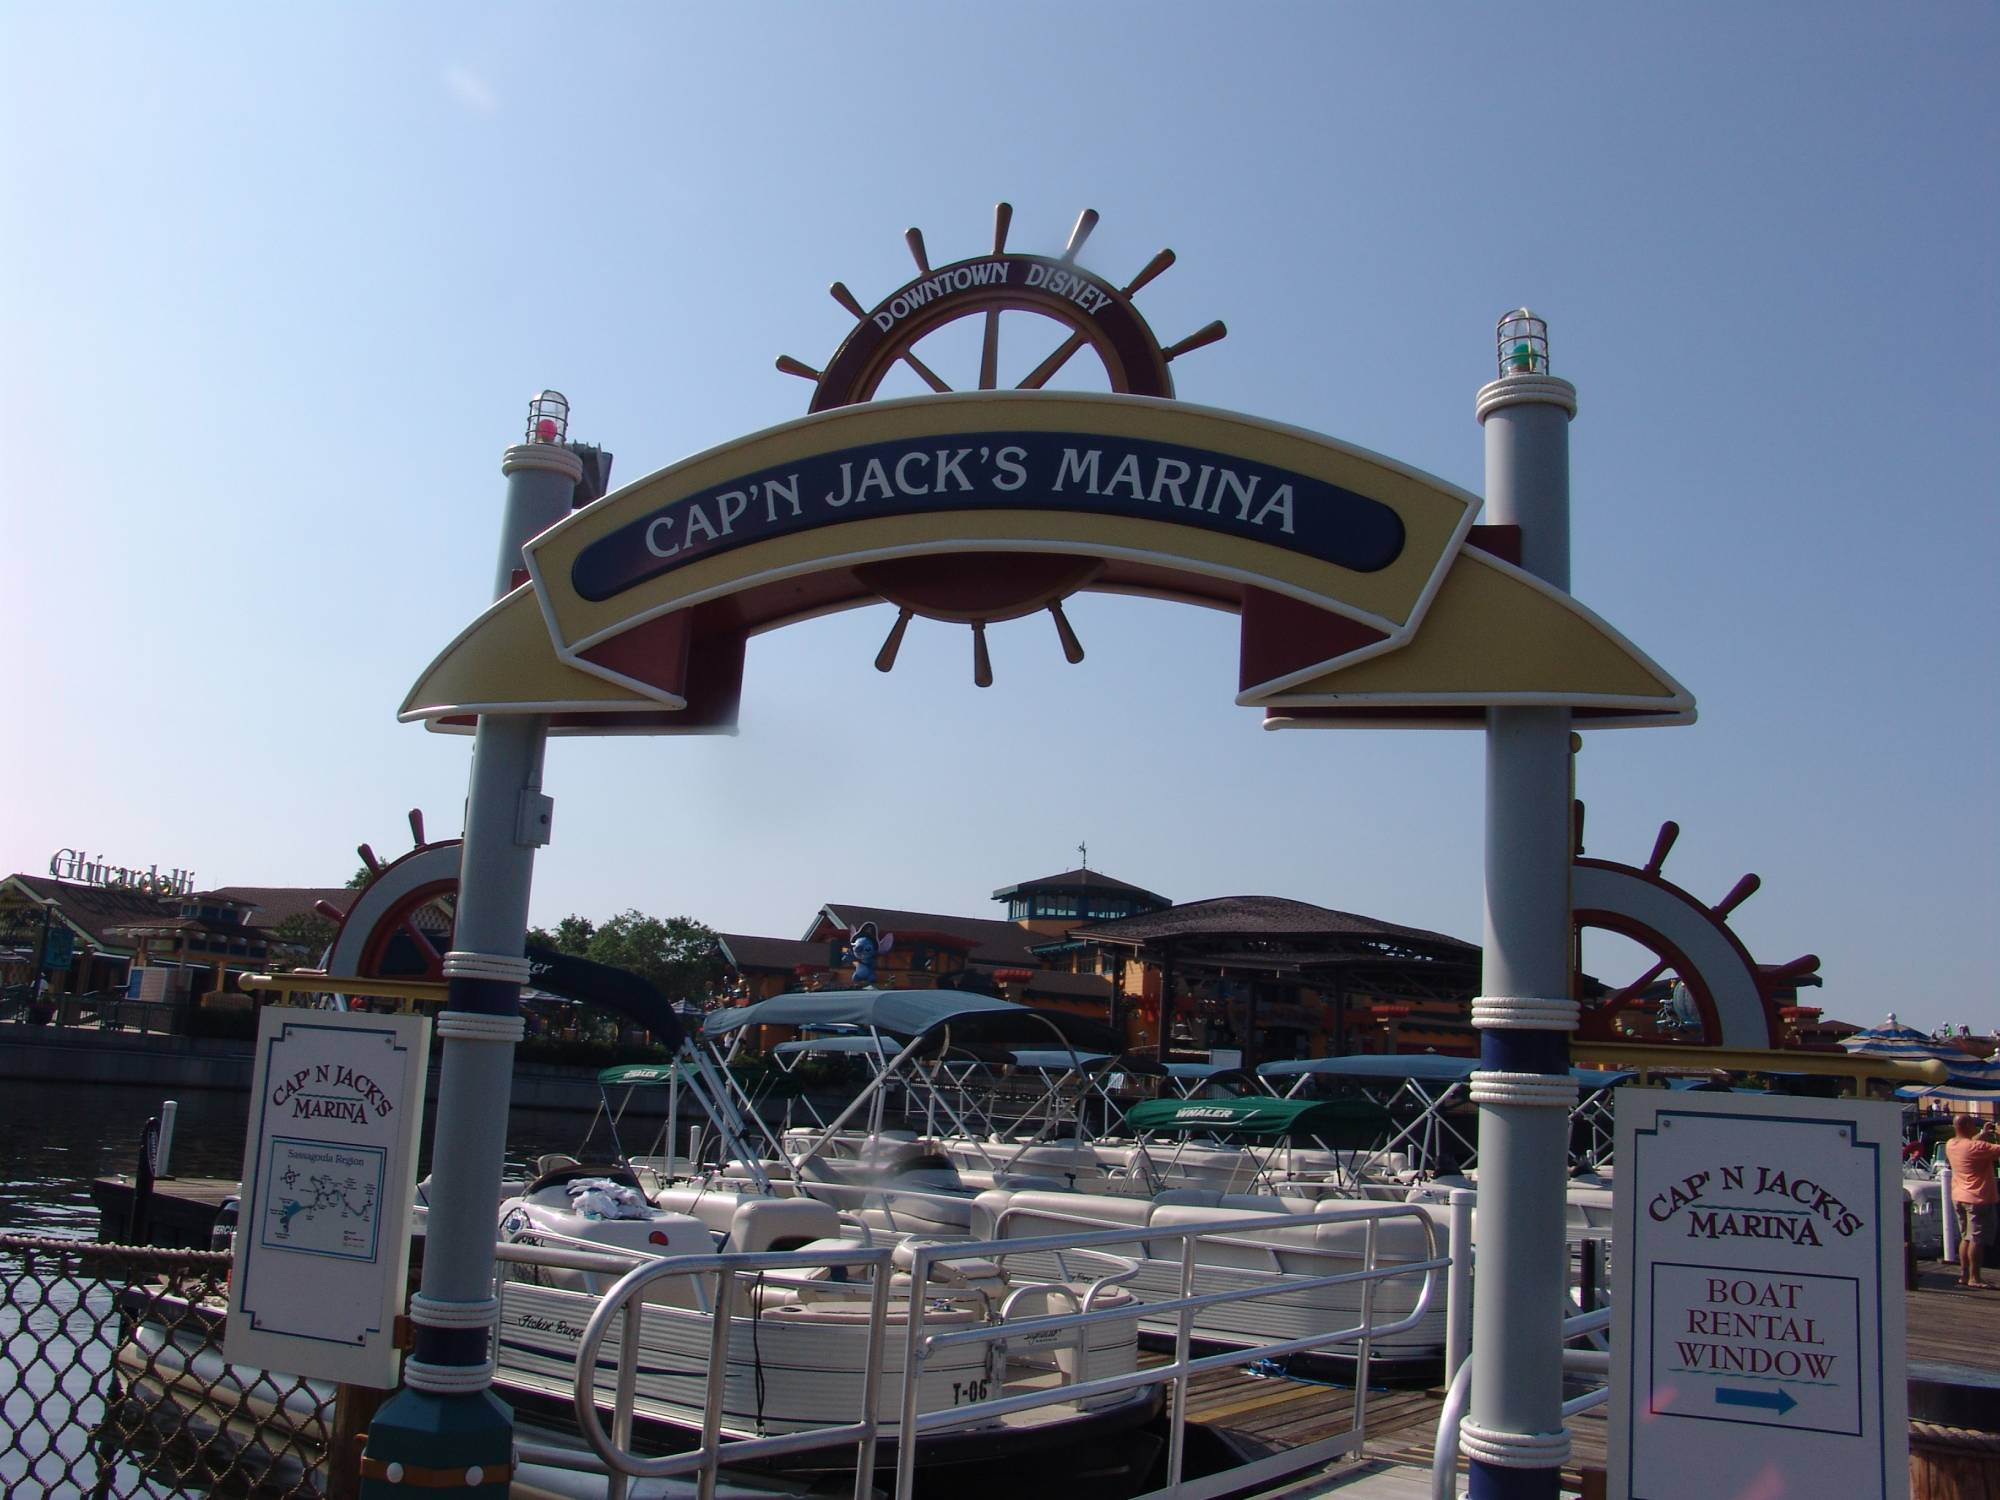 Downtown Disney - Cap'n Jack's marina